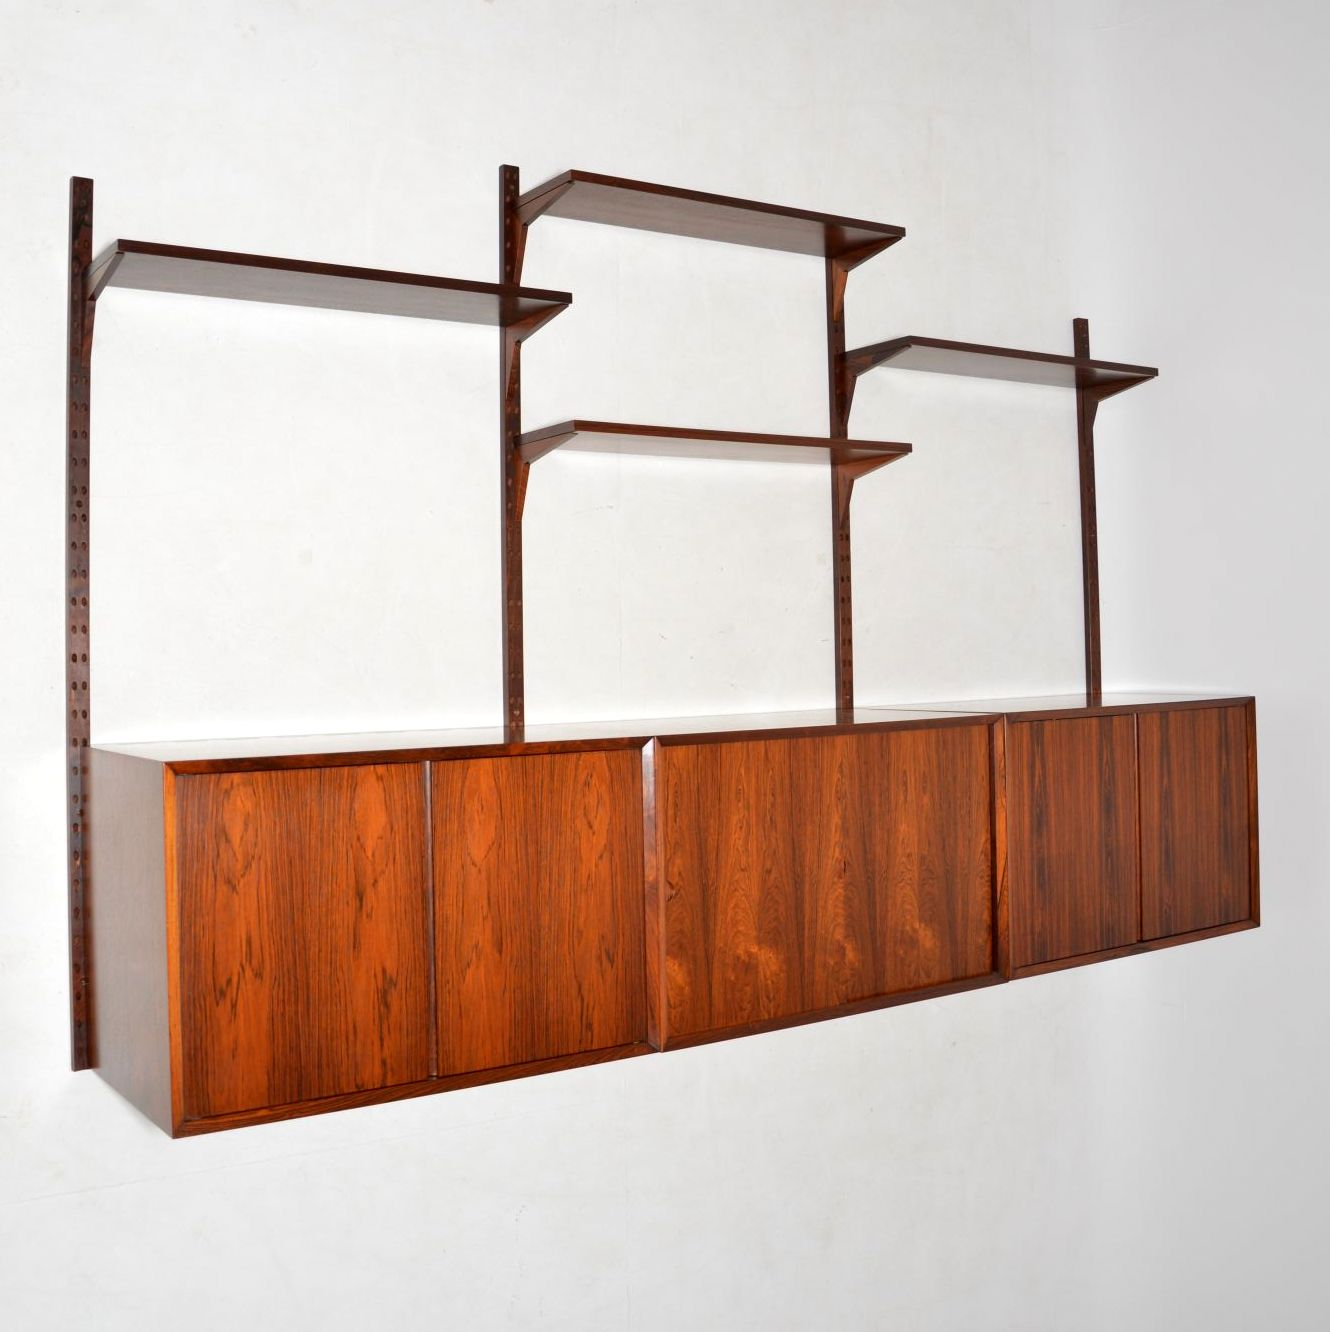 Vintage Rosewood Sideboard Details About Cado Royal Shelving Danish Vintage Rosewood Wall Unit Sideboard Bookcase